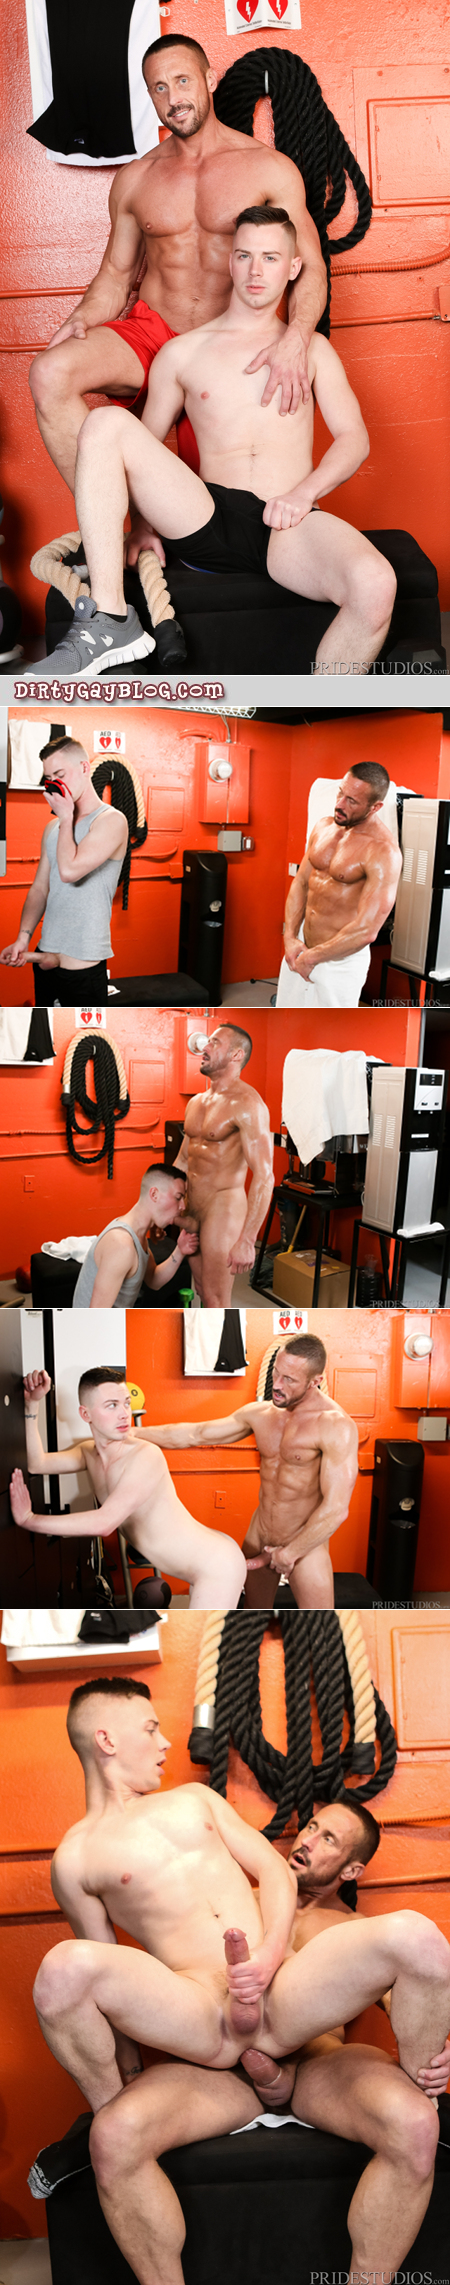 Muscle Daddy catches a twink in the locker room sniffing his sweaty jockstrap.